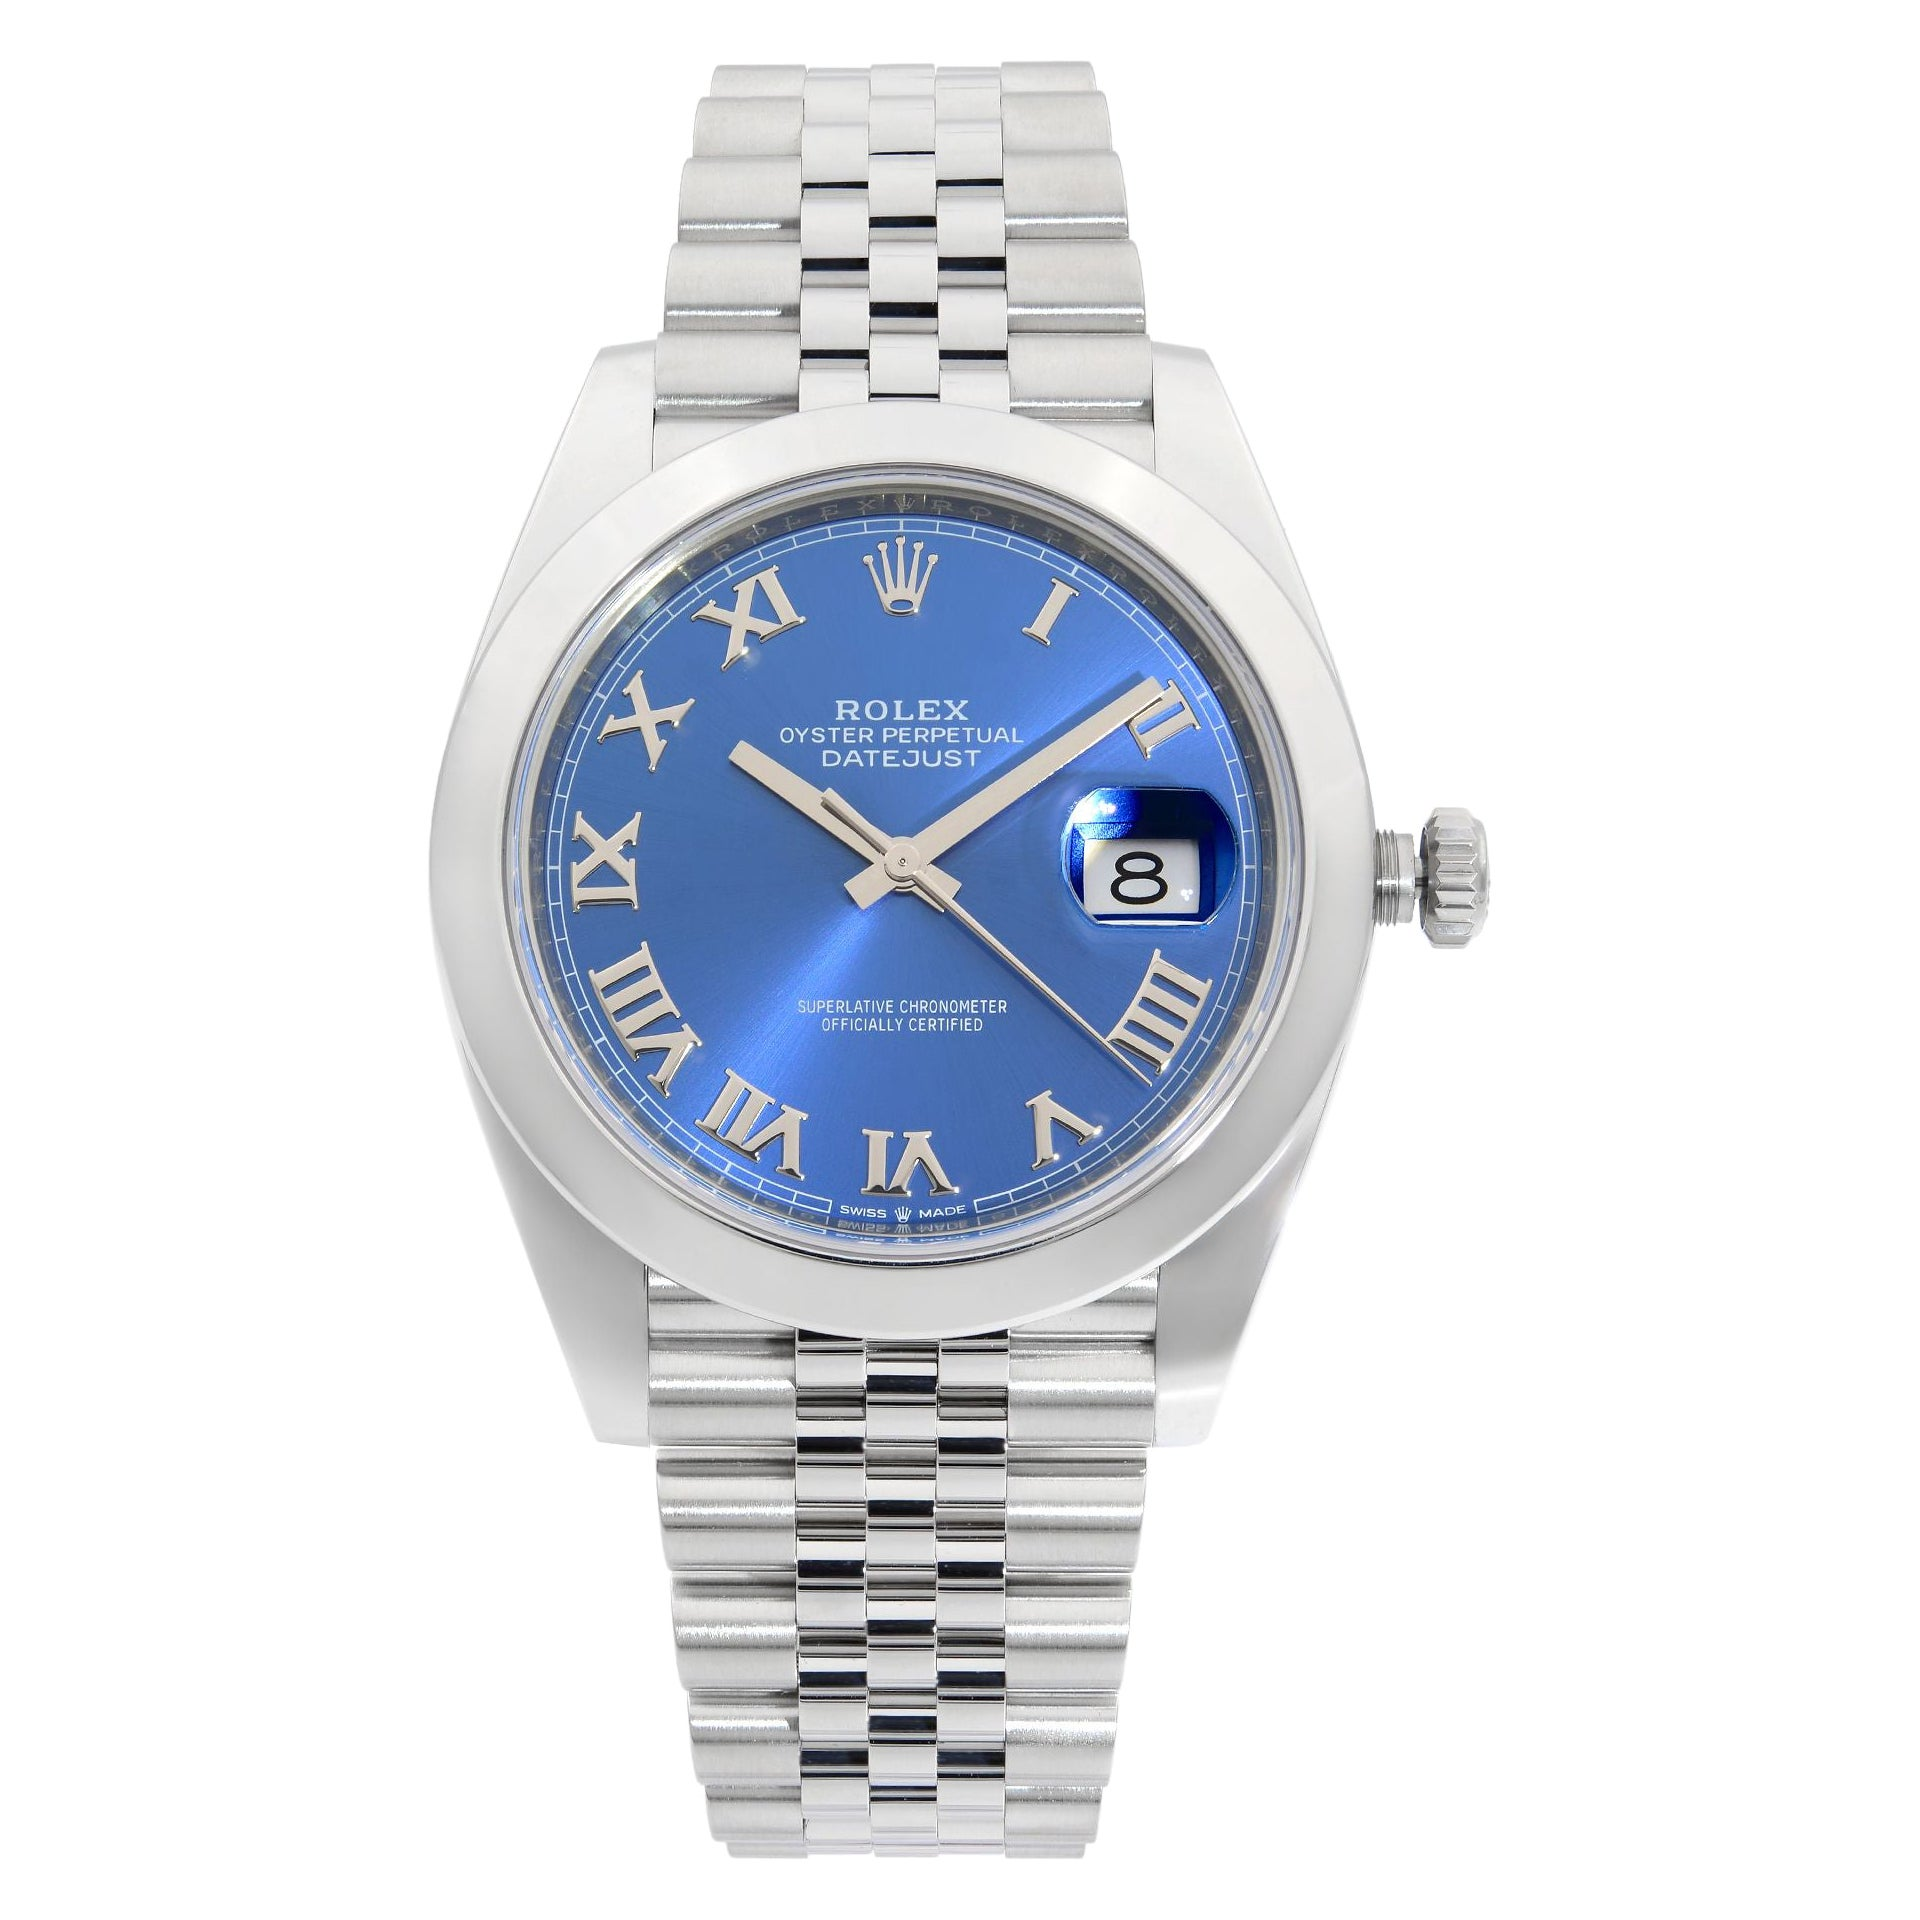 Rolex Datejust 41 Steel Blue Roman Dial Jubilee Automatic Men's Watch 126300